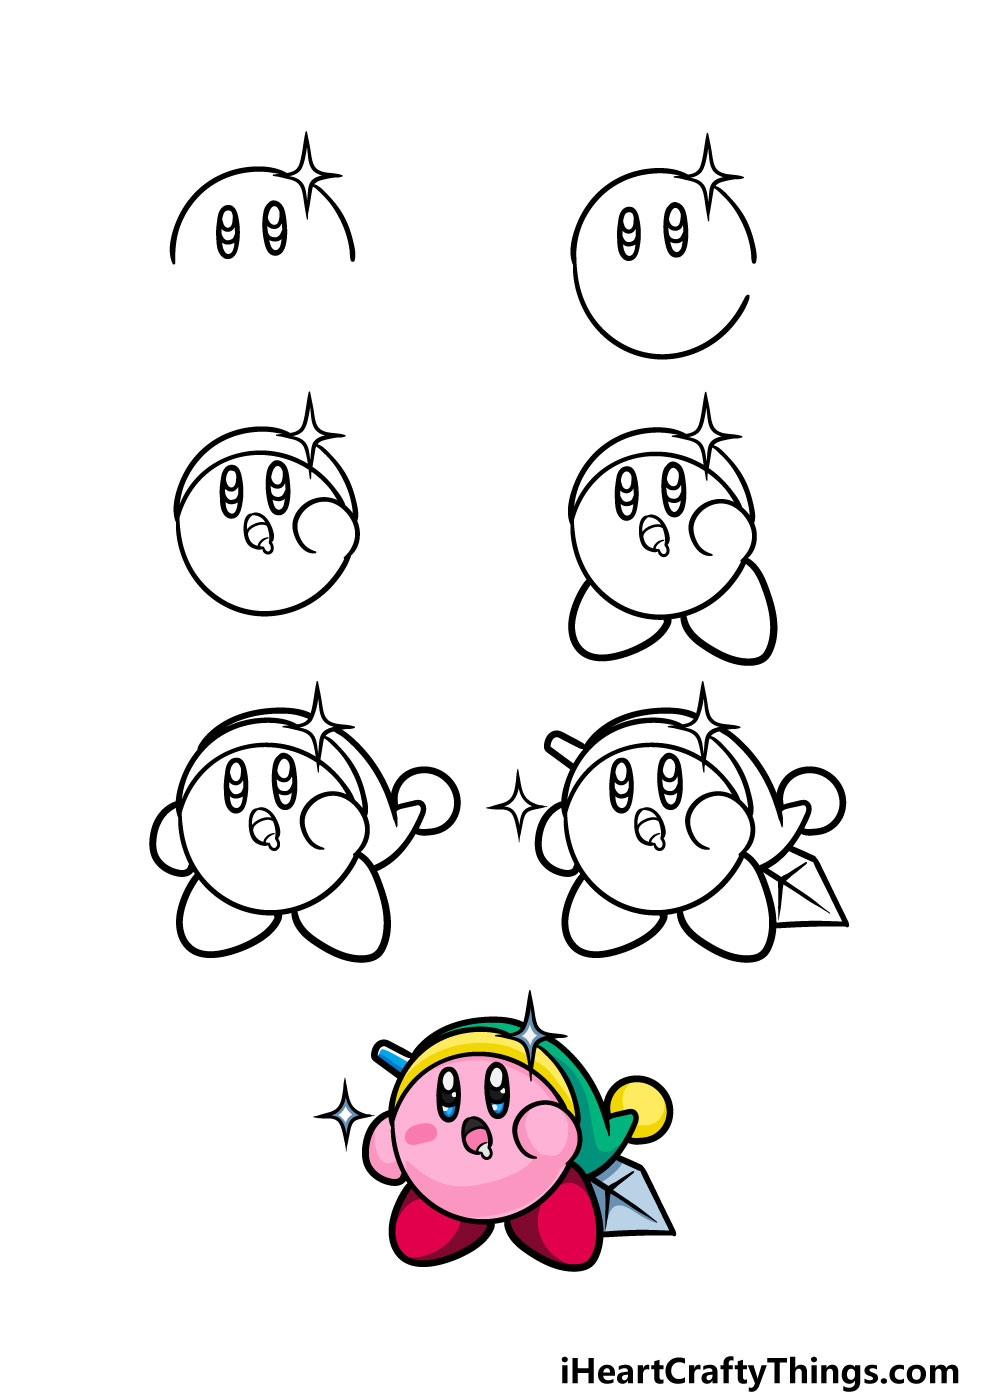 how to draw kirby in 7 steps